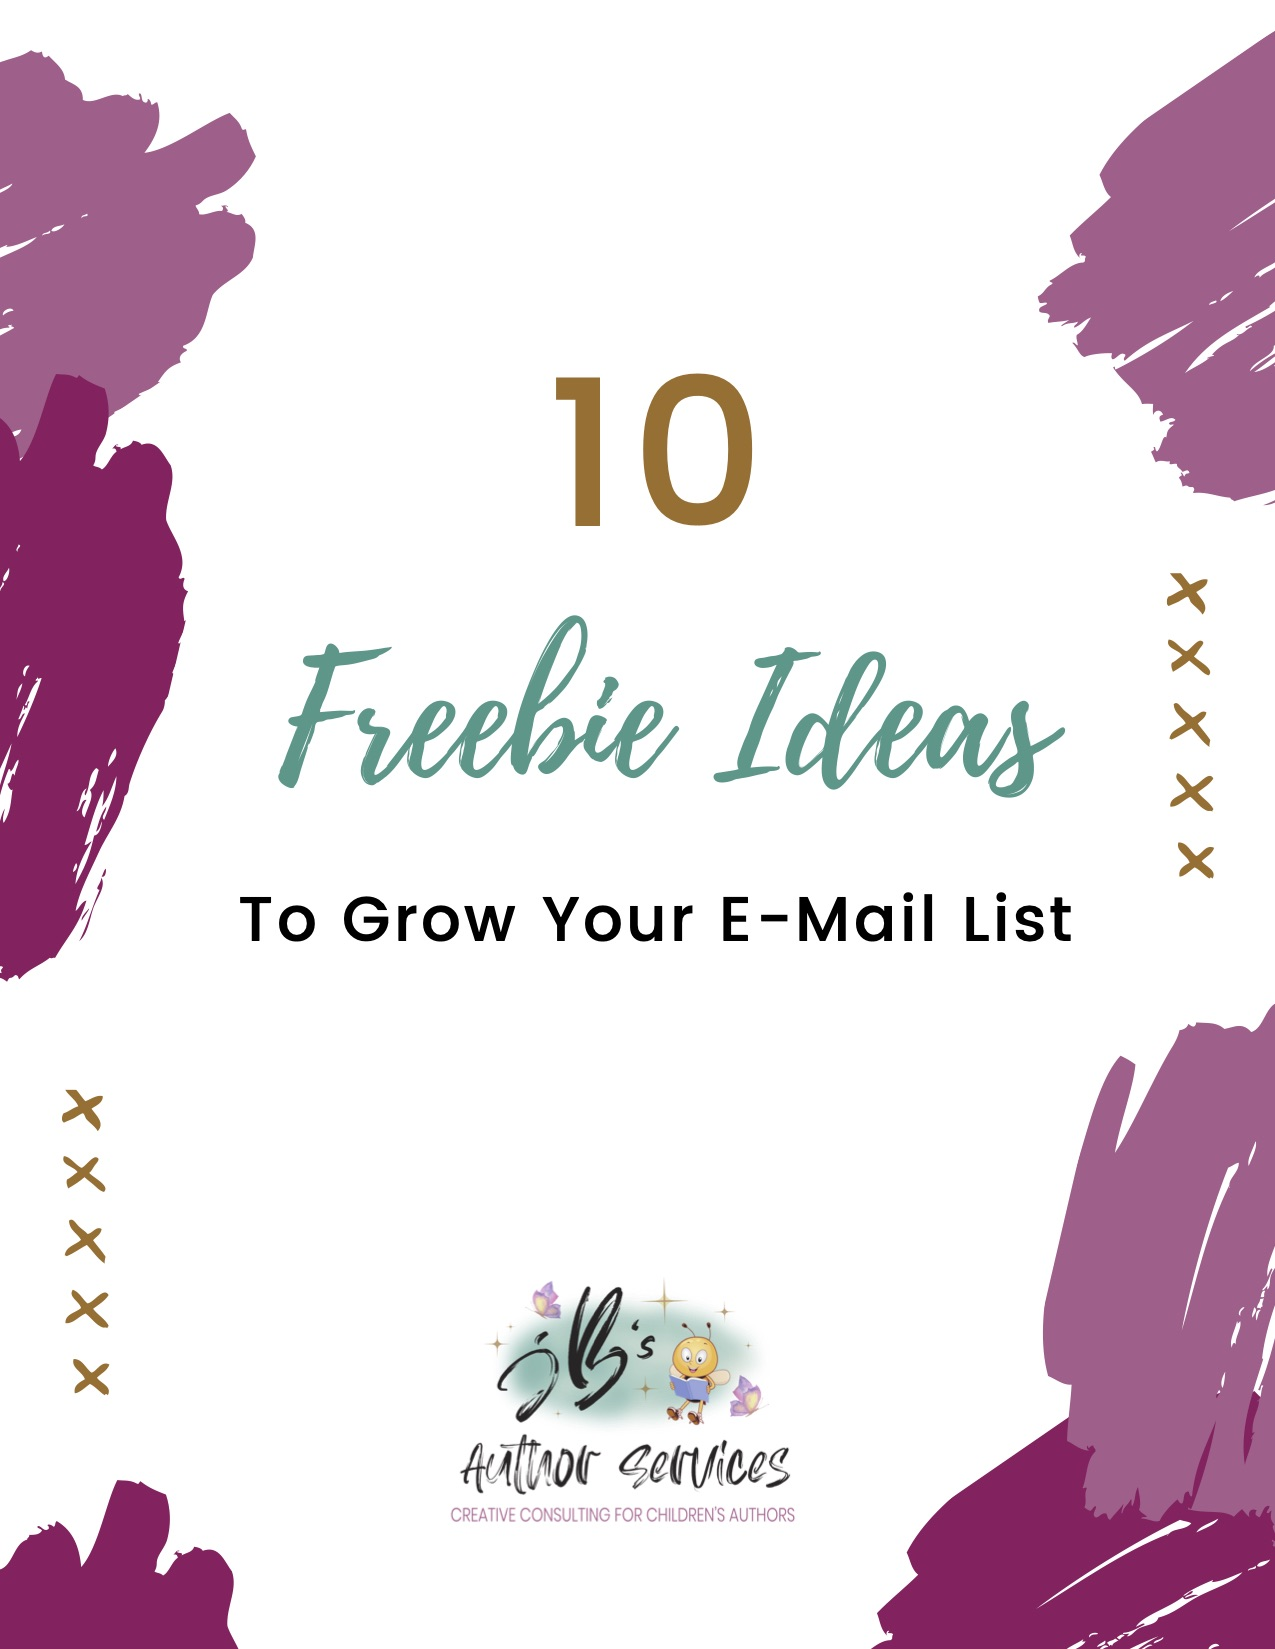 Freebie ideas authors